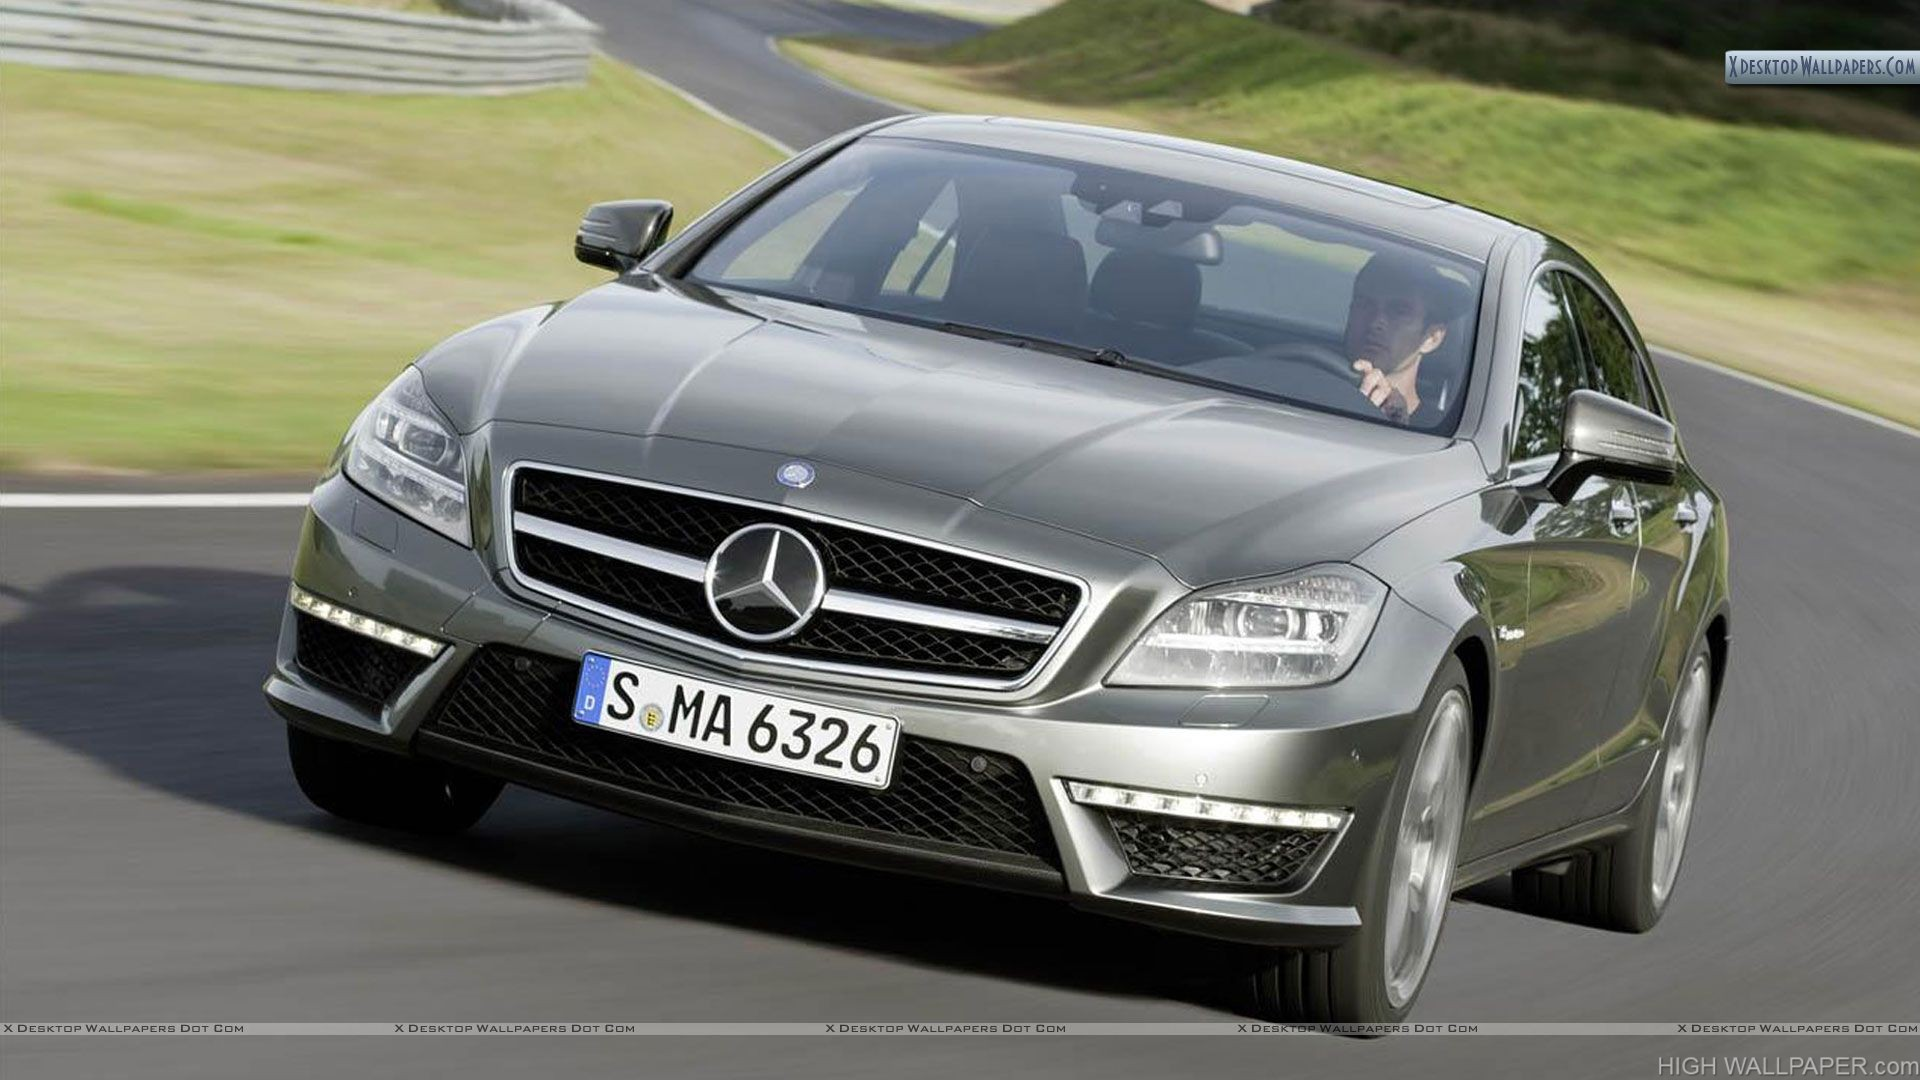 Driving 2012 Mercedes Benz CLS63 AMG on Highway